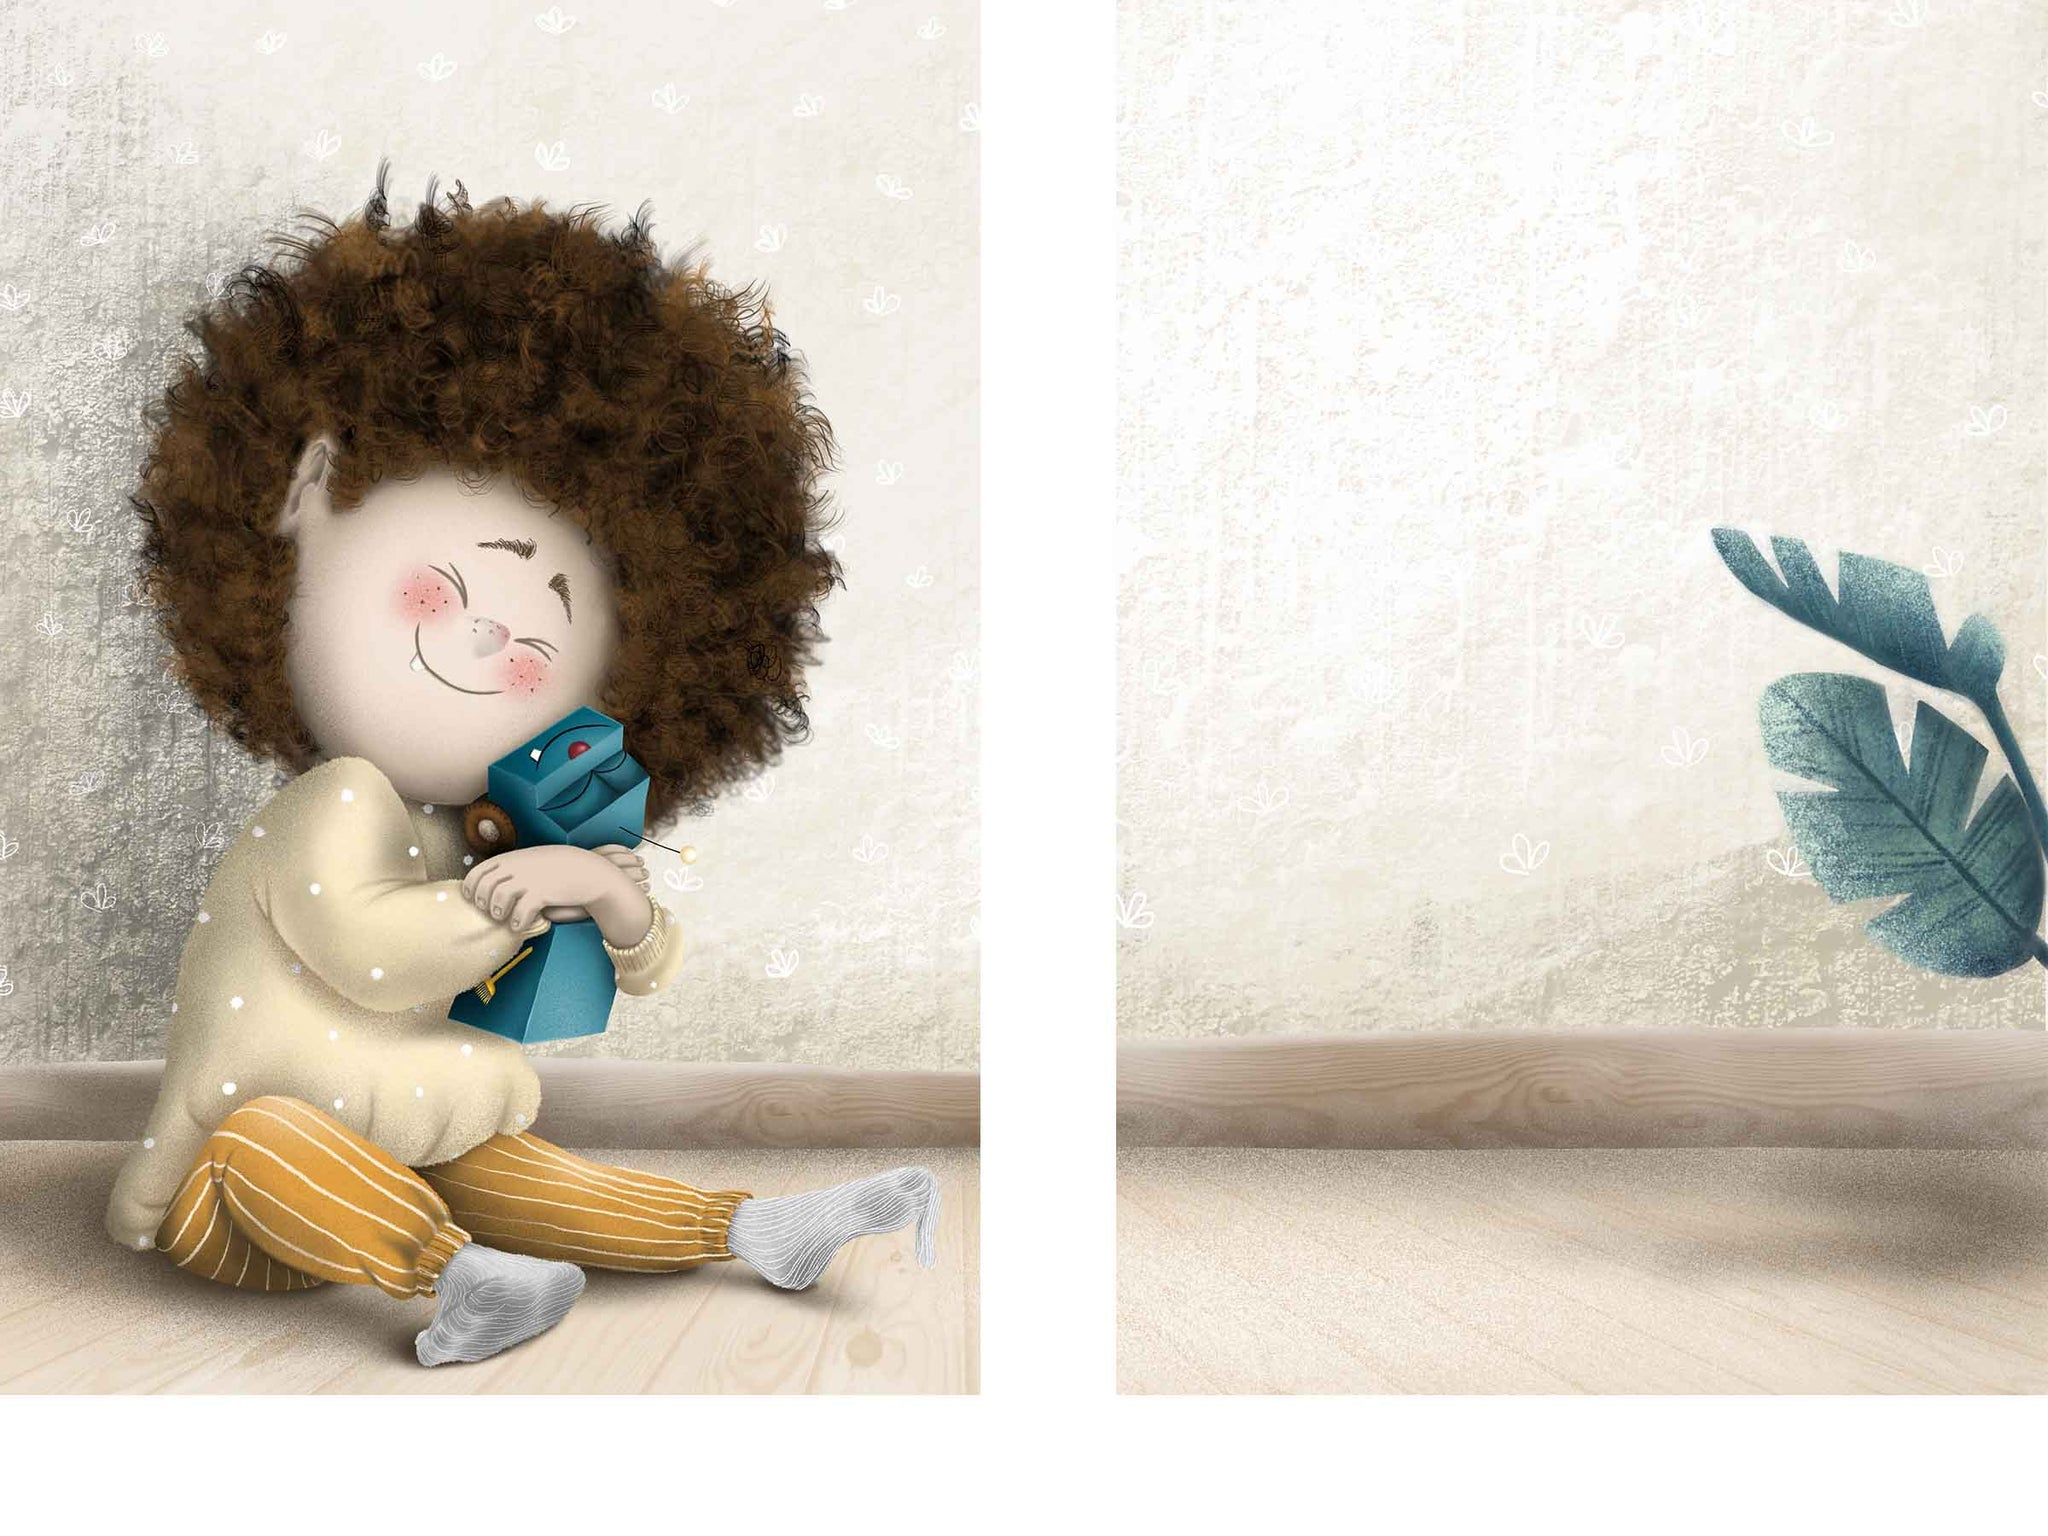 A children's illustration of a little boy with curly hair sitting on the floor, holding a truck toy. Both are very happy